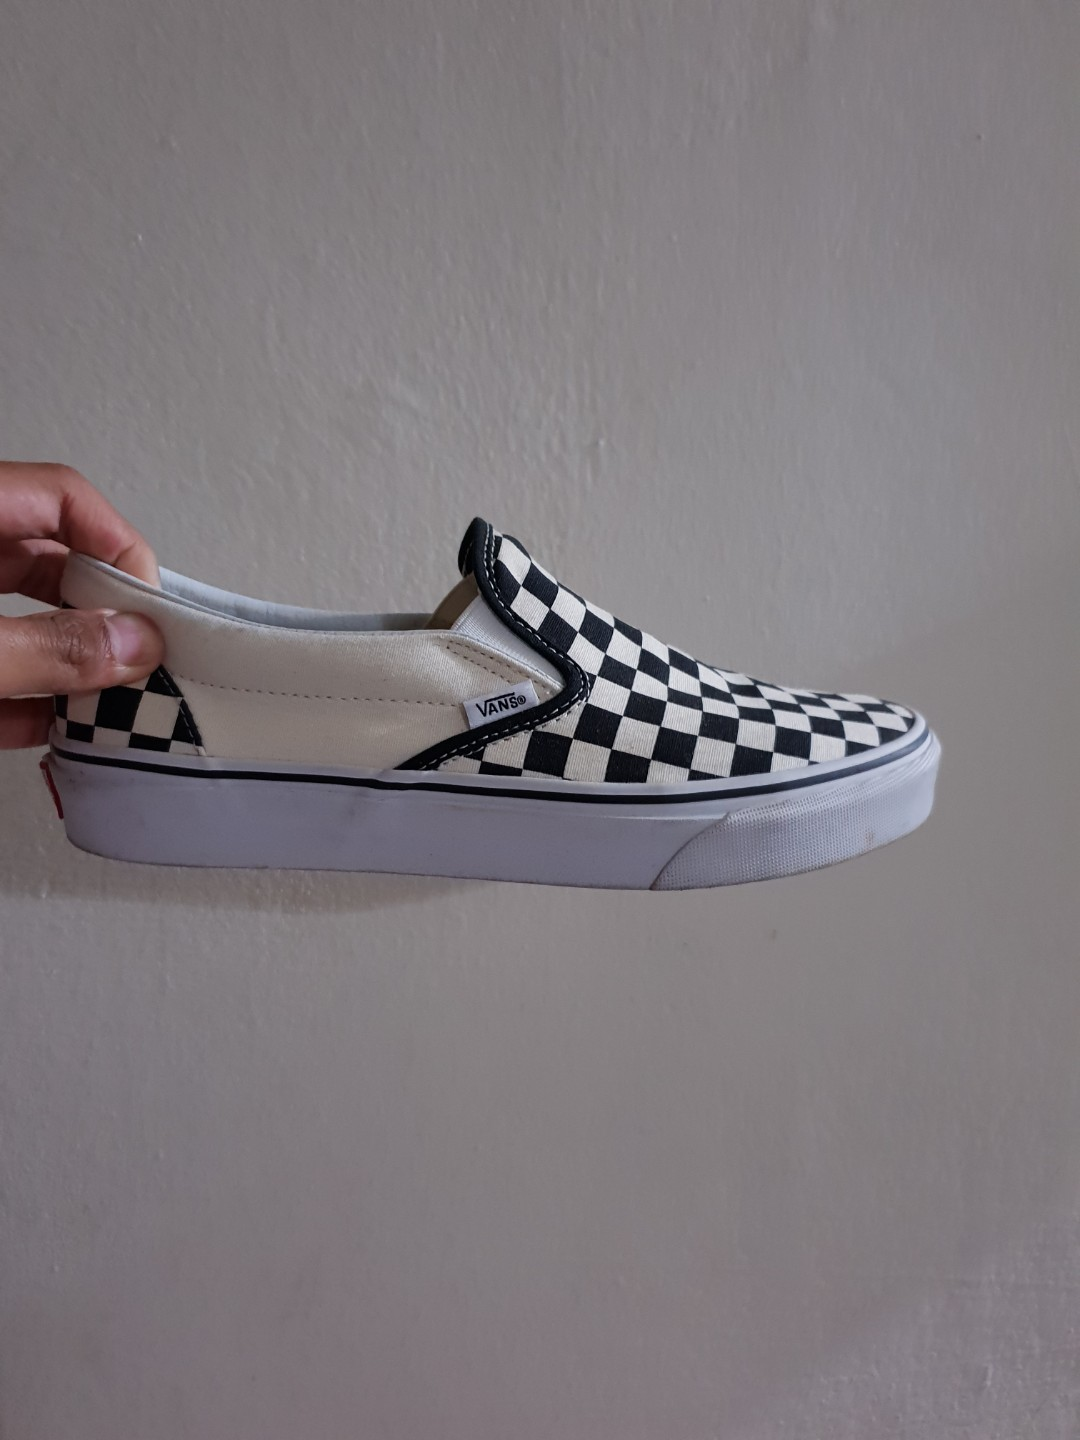 the latest 080c0 41a95 Vans Checkerboard Slip On, Men s Fashion, Footwear, Sneakers on ...